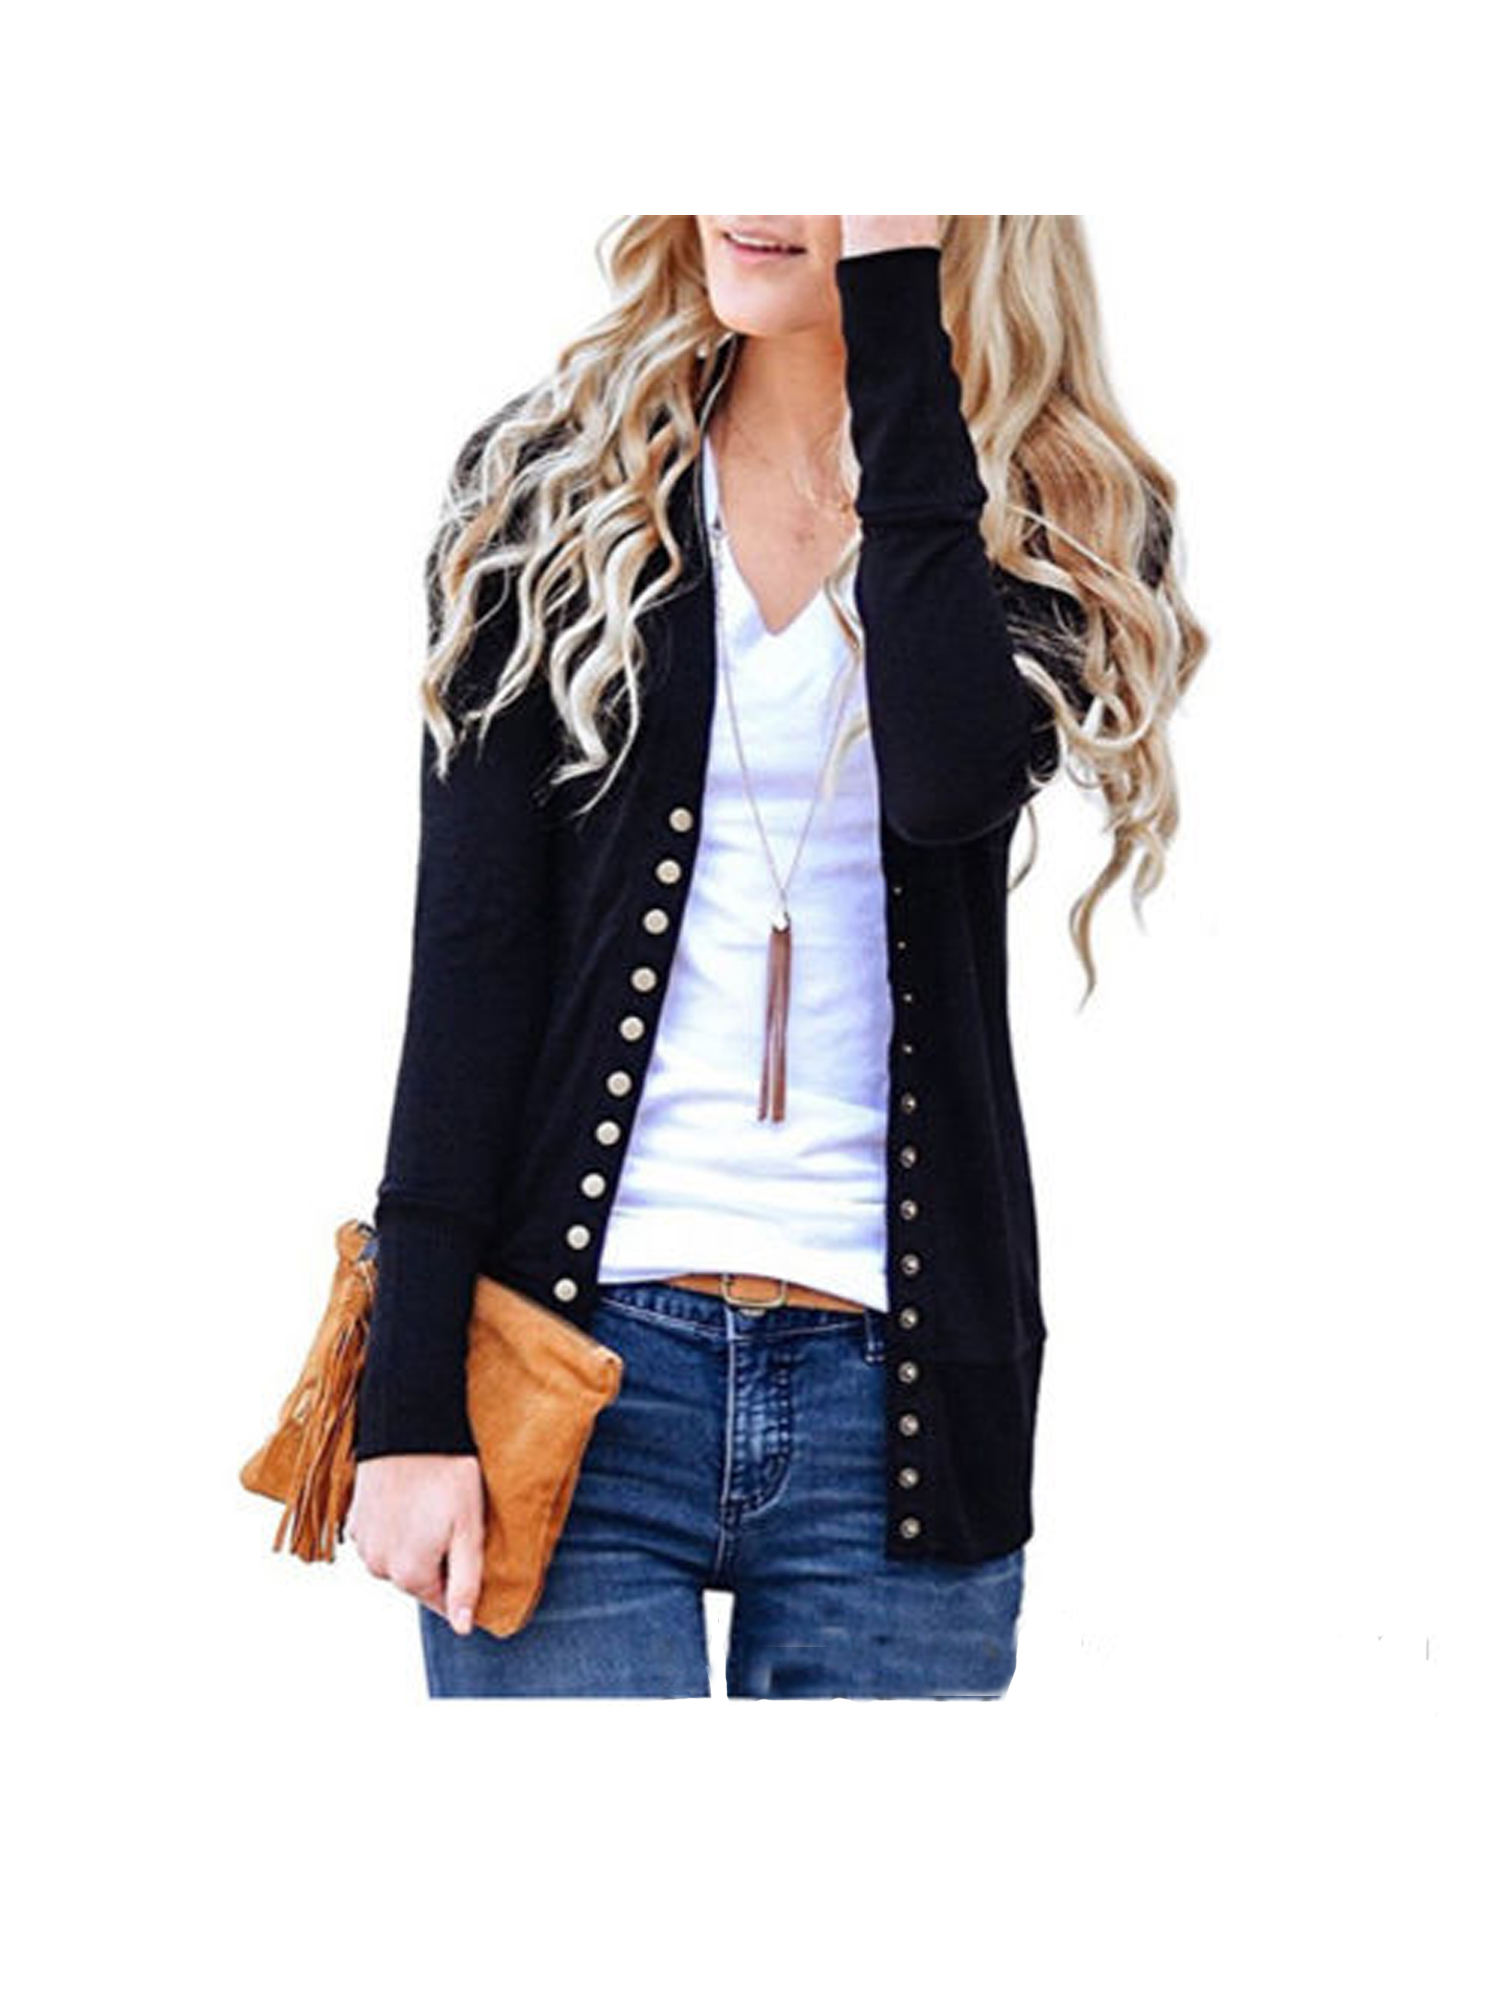 Lady Women Low Cut V-Neck Long Sleeve Knit Snap Button Down Cardigan Sweater Top